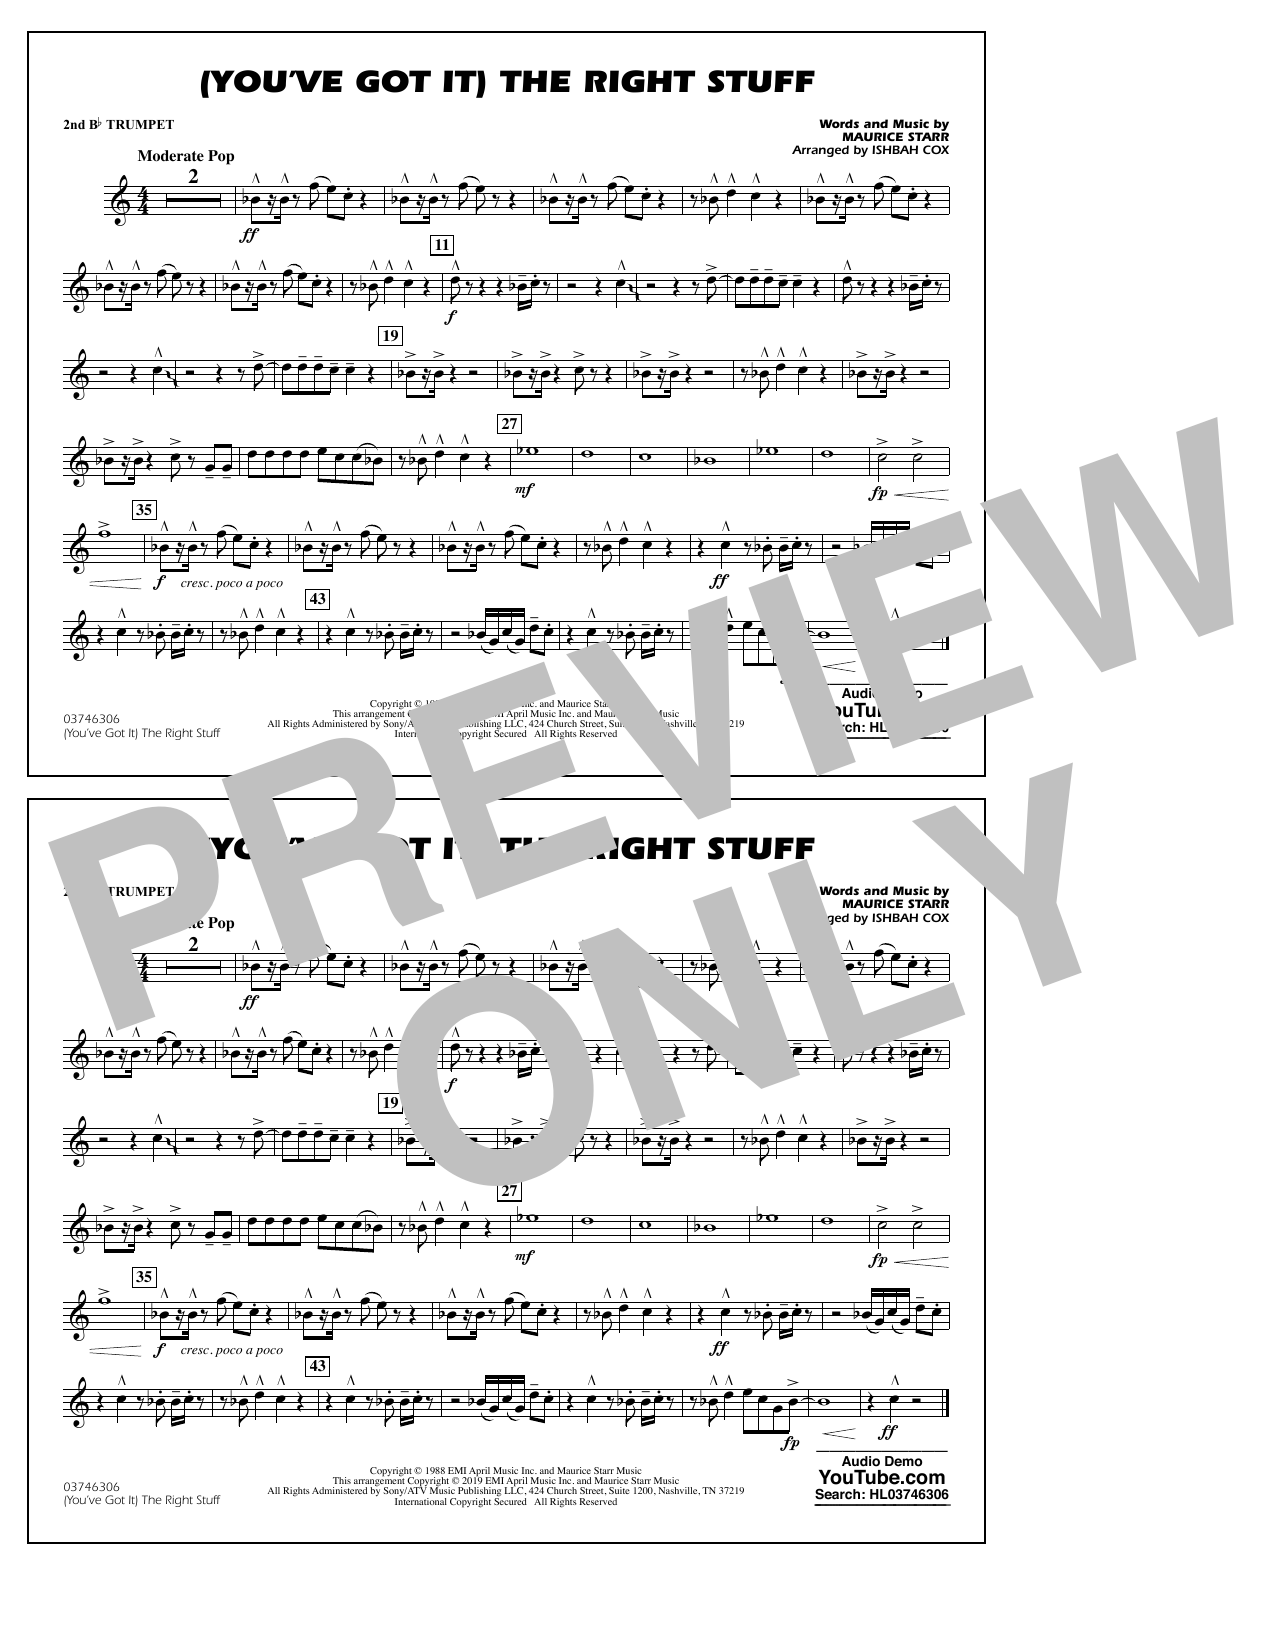 New Kids On The Block (You've Got It) The Right Stuff (arr. Ishbah Cox) - 2nd Bb Trumpet sheet music preview music notes and score for Marching Band including 1 page(s)